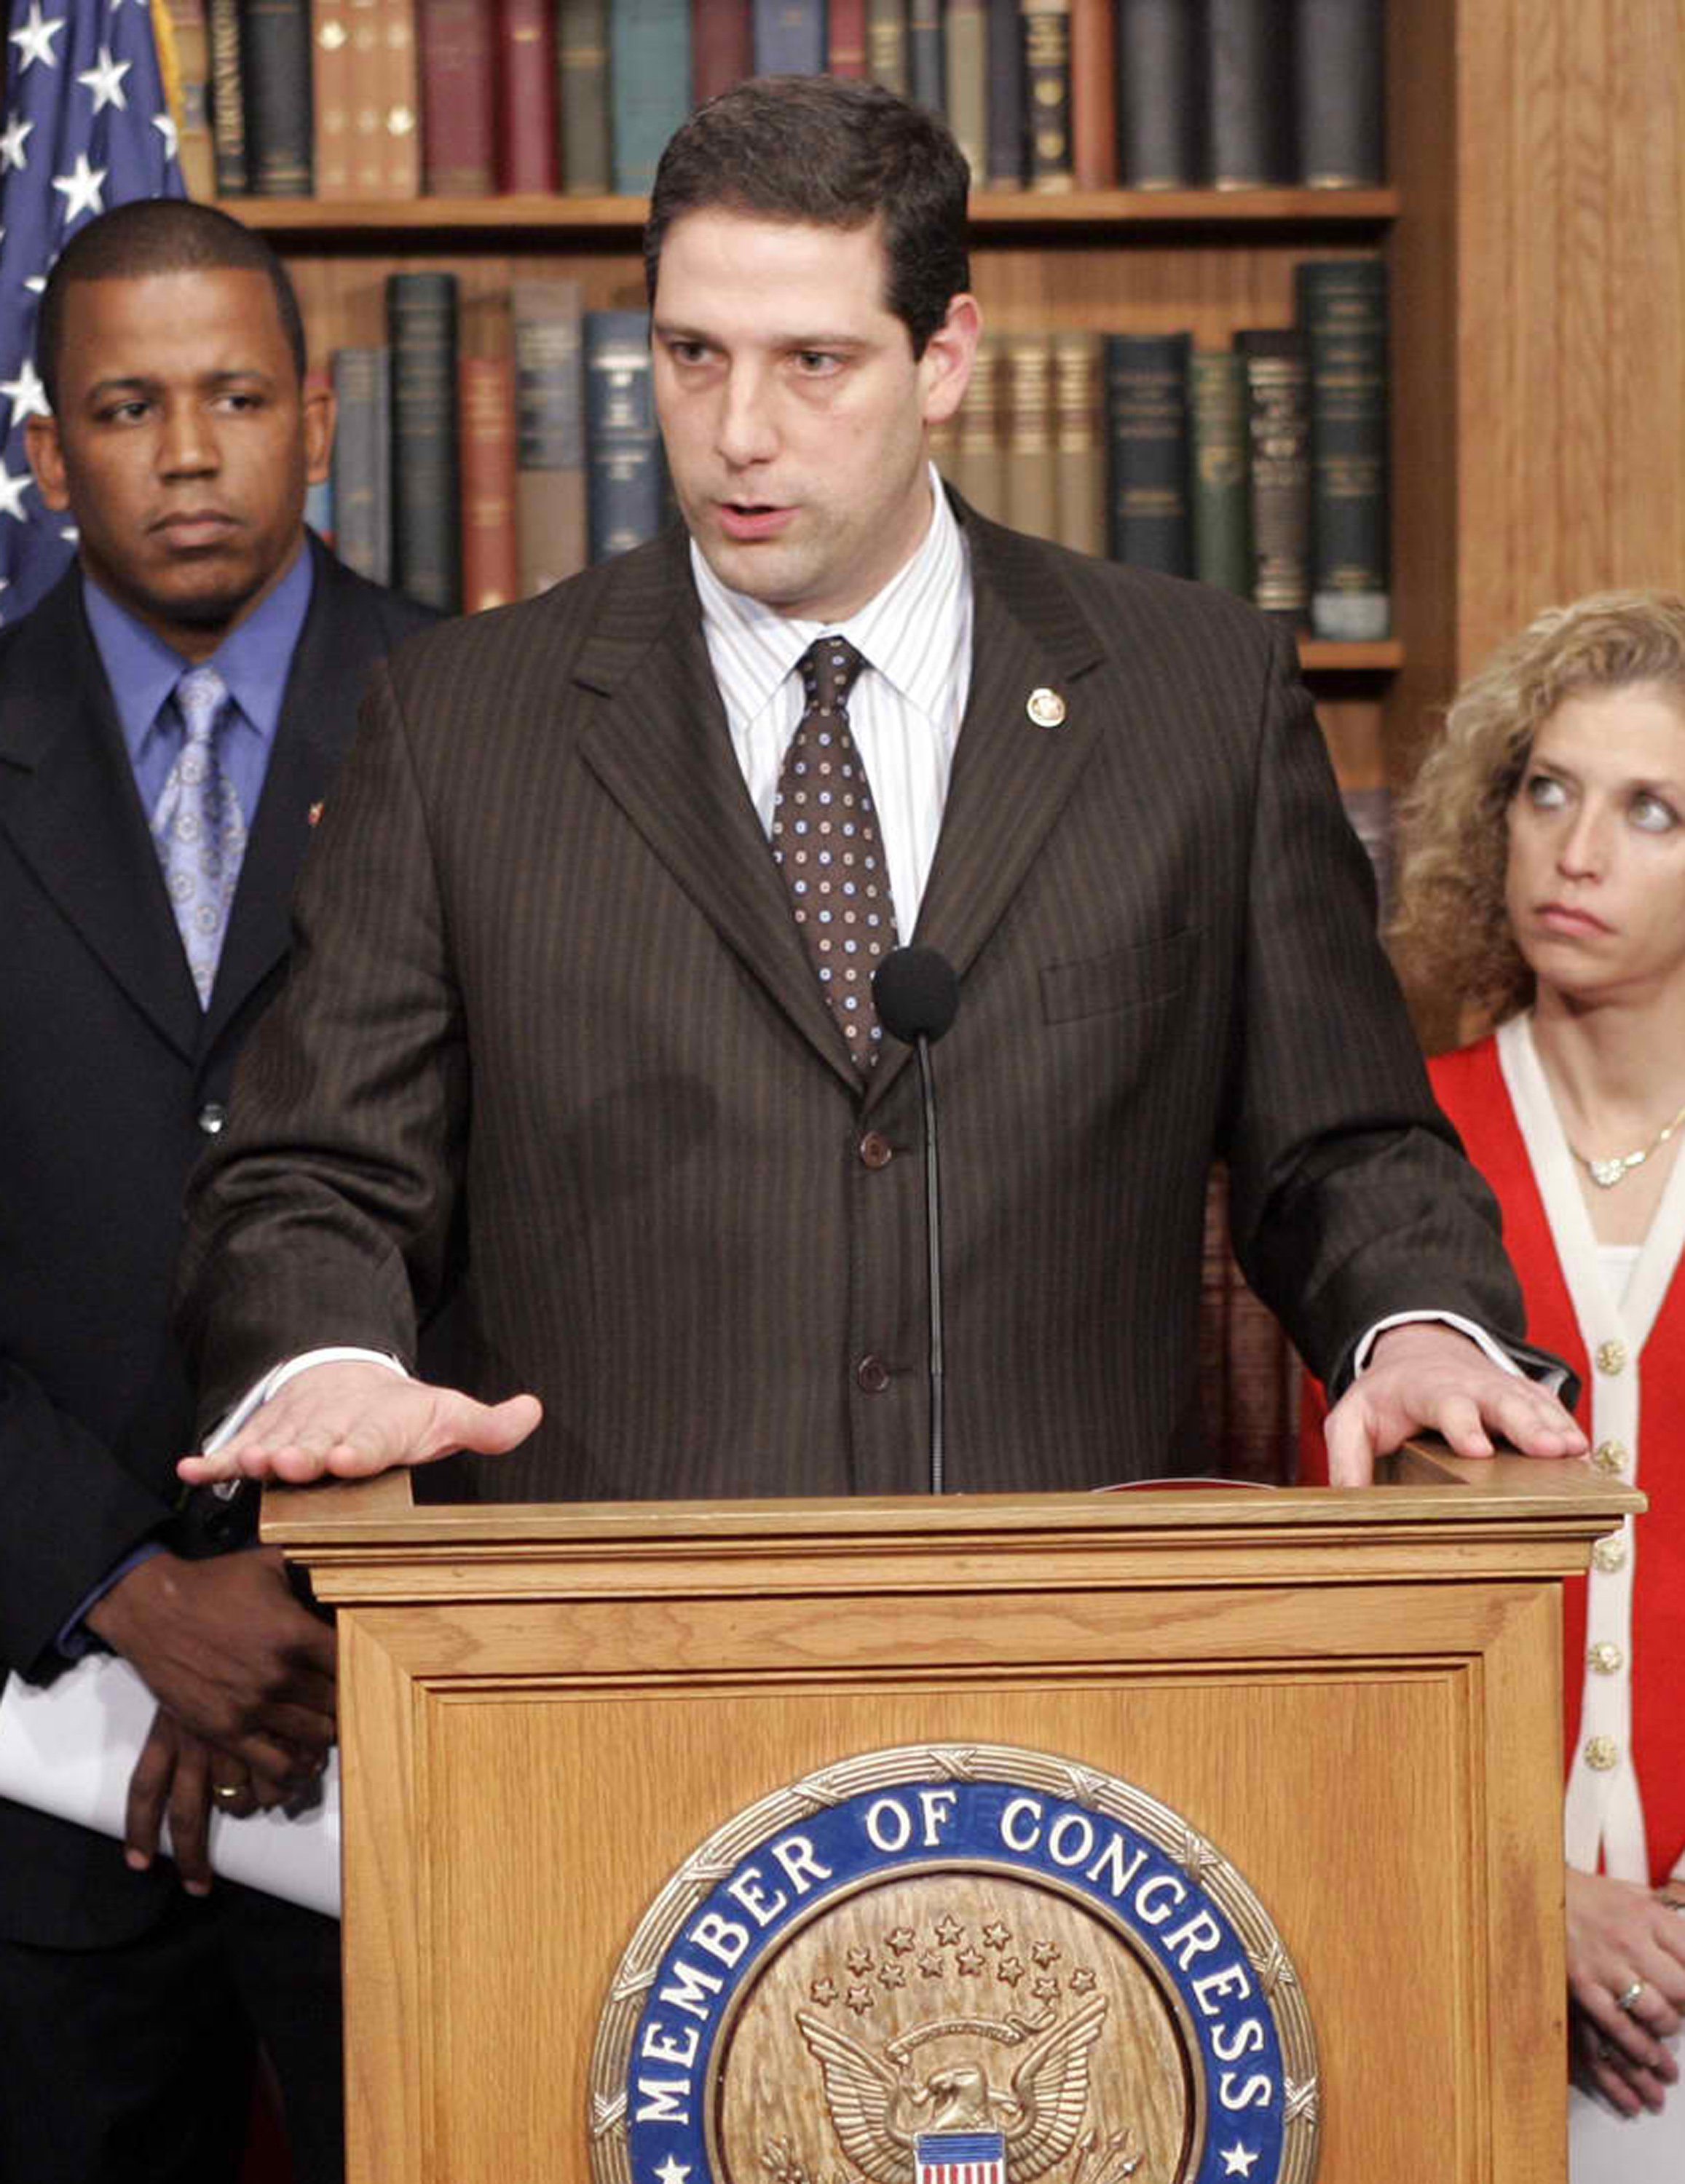 Rep. Tim Ryan, D-Ohio, speaks at a news conference in Washington on Feb. 14, 2007.